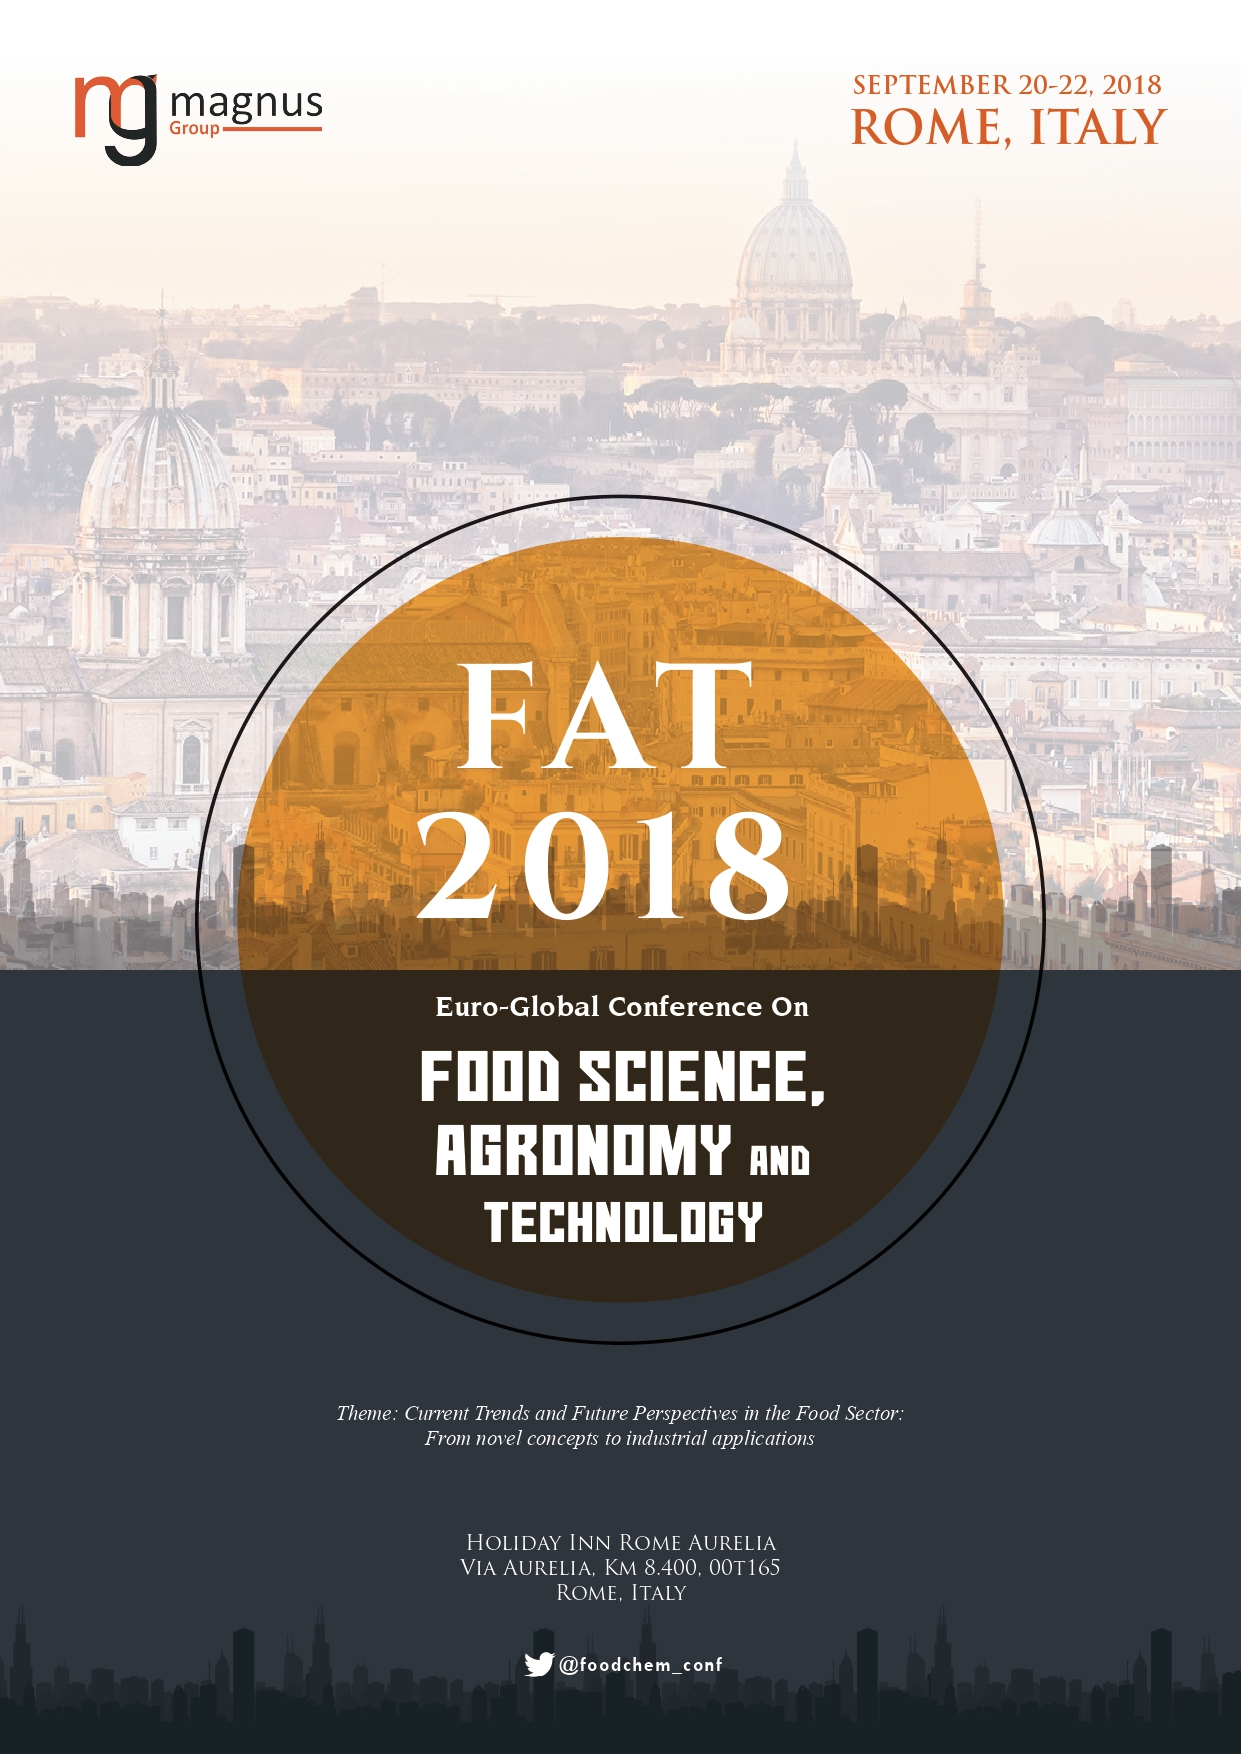 Euro-Global Conference on Food Science, Agronomy and Technology | Rome, Italy Book